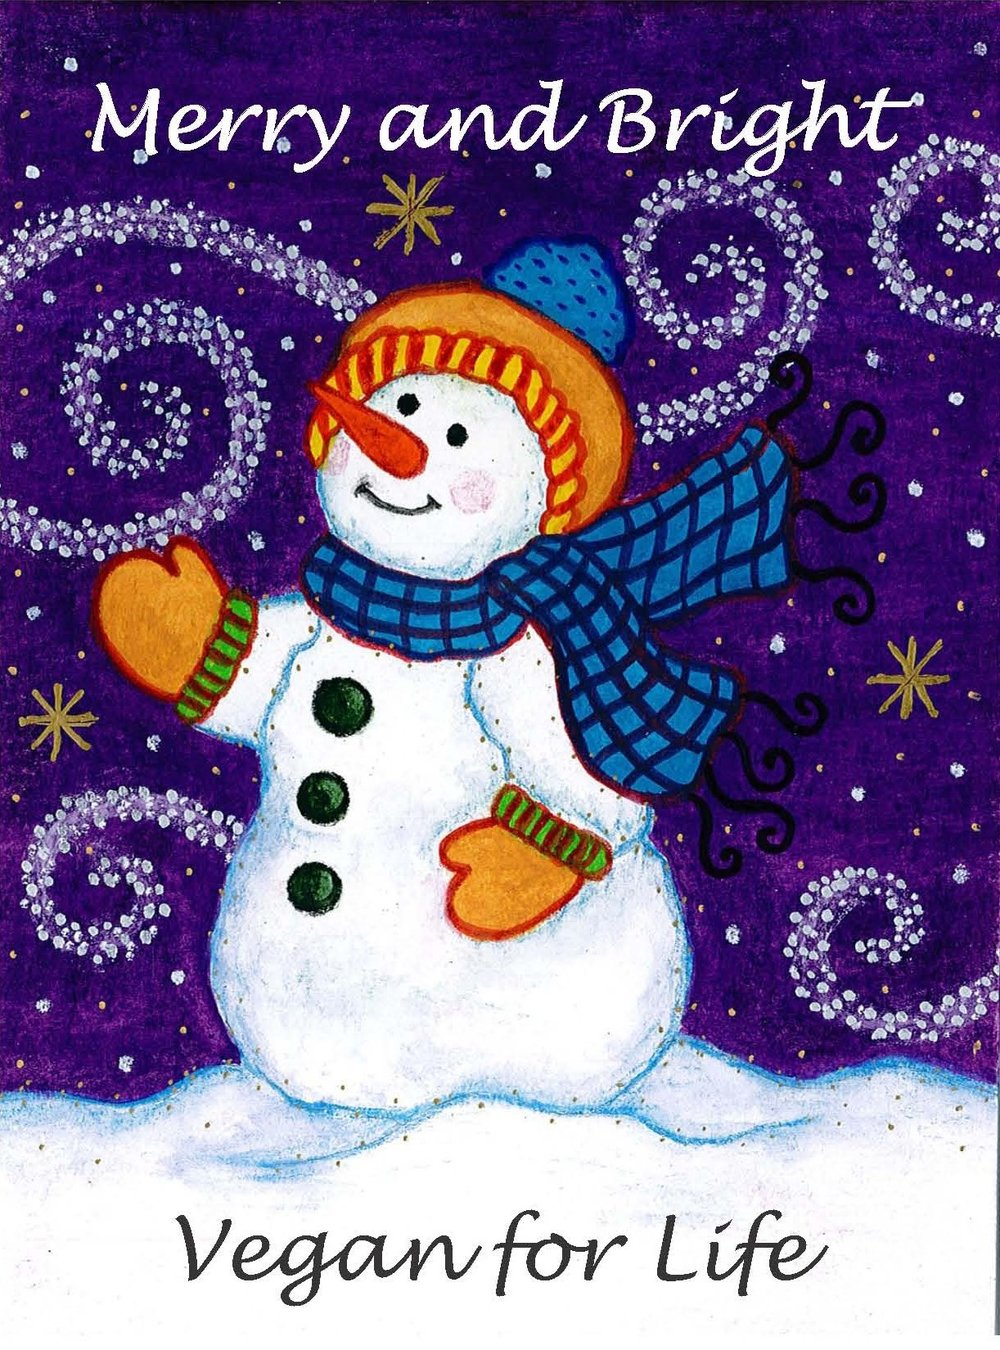 ALL CARD  CHRISTMAS CARDS _Page_1 - Copy (3).jpg